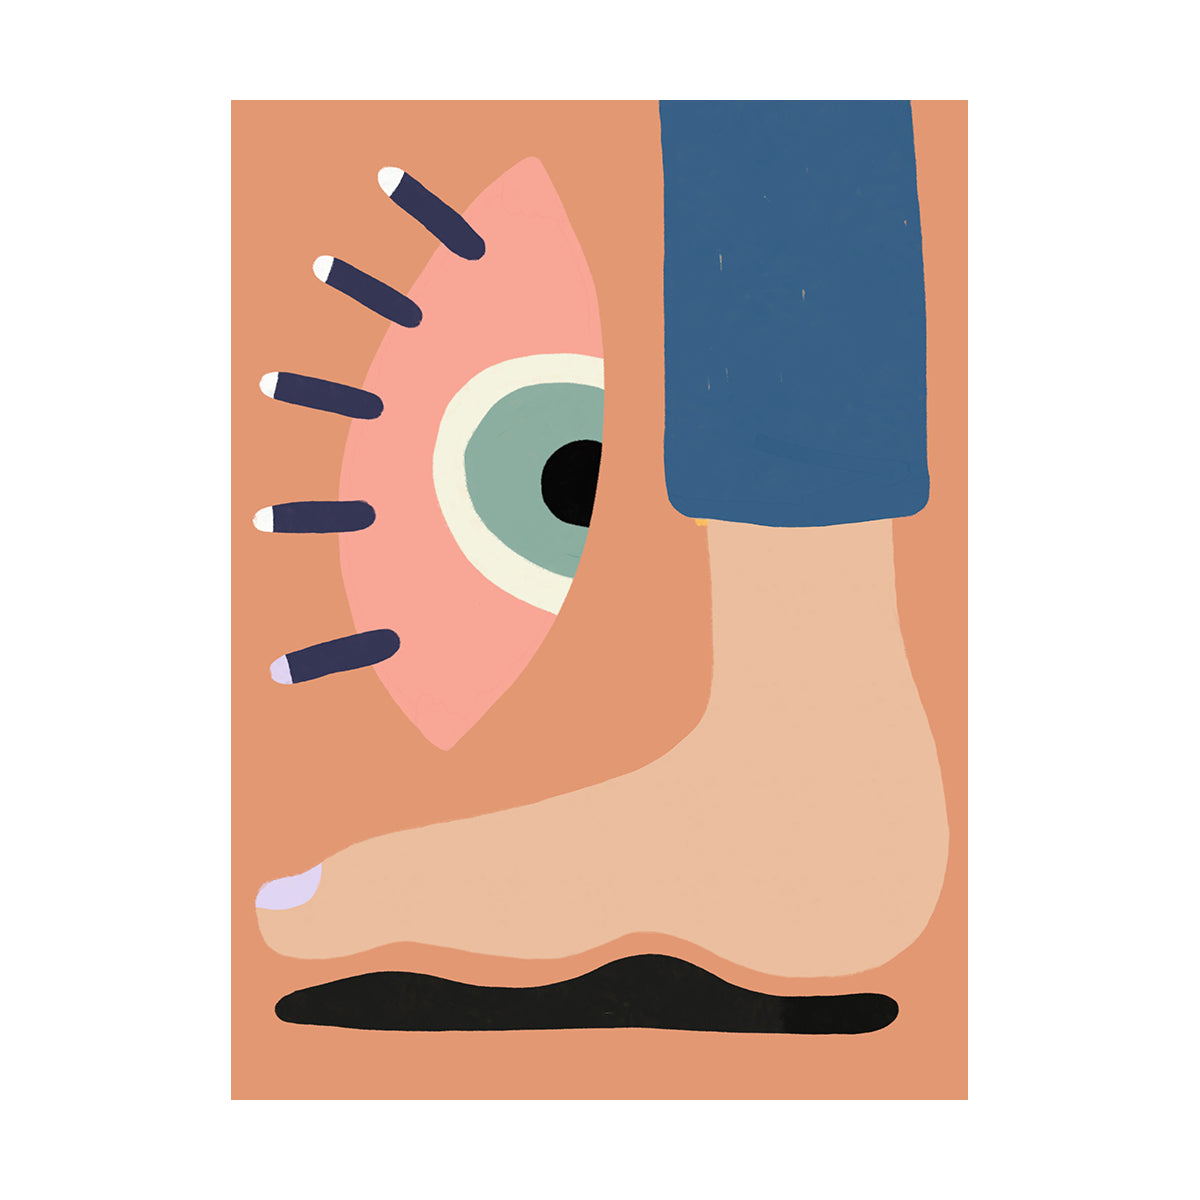 Pedicure by Fabienne Meyer - art print